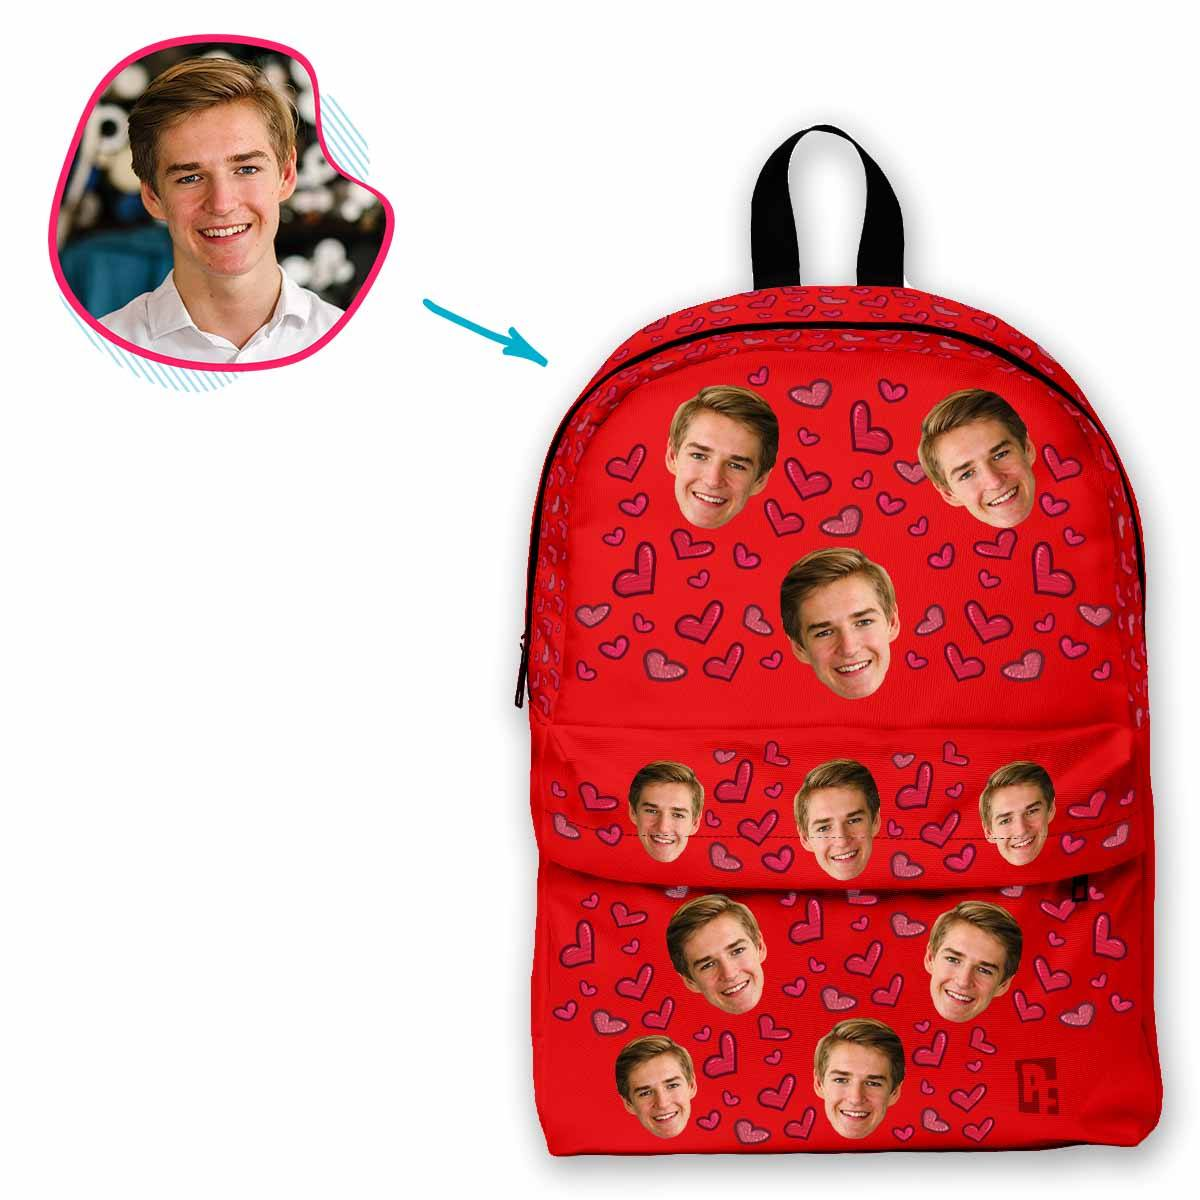 red Heart classic backpack personalized with photo of face printed on it